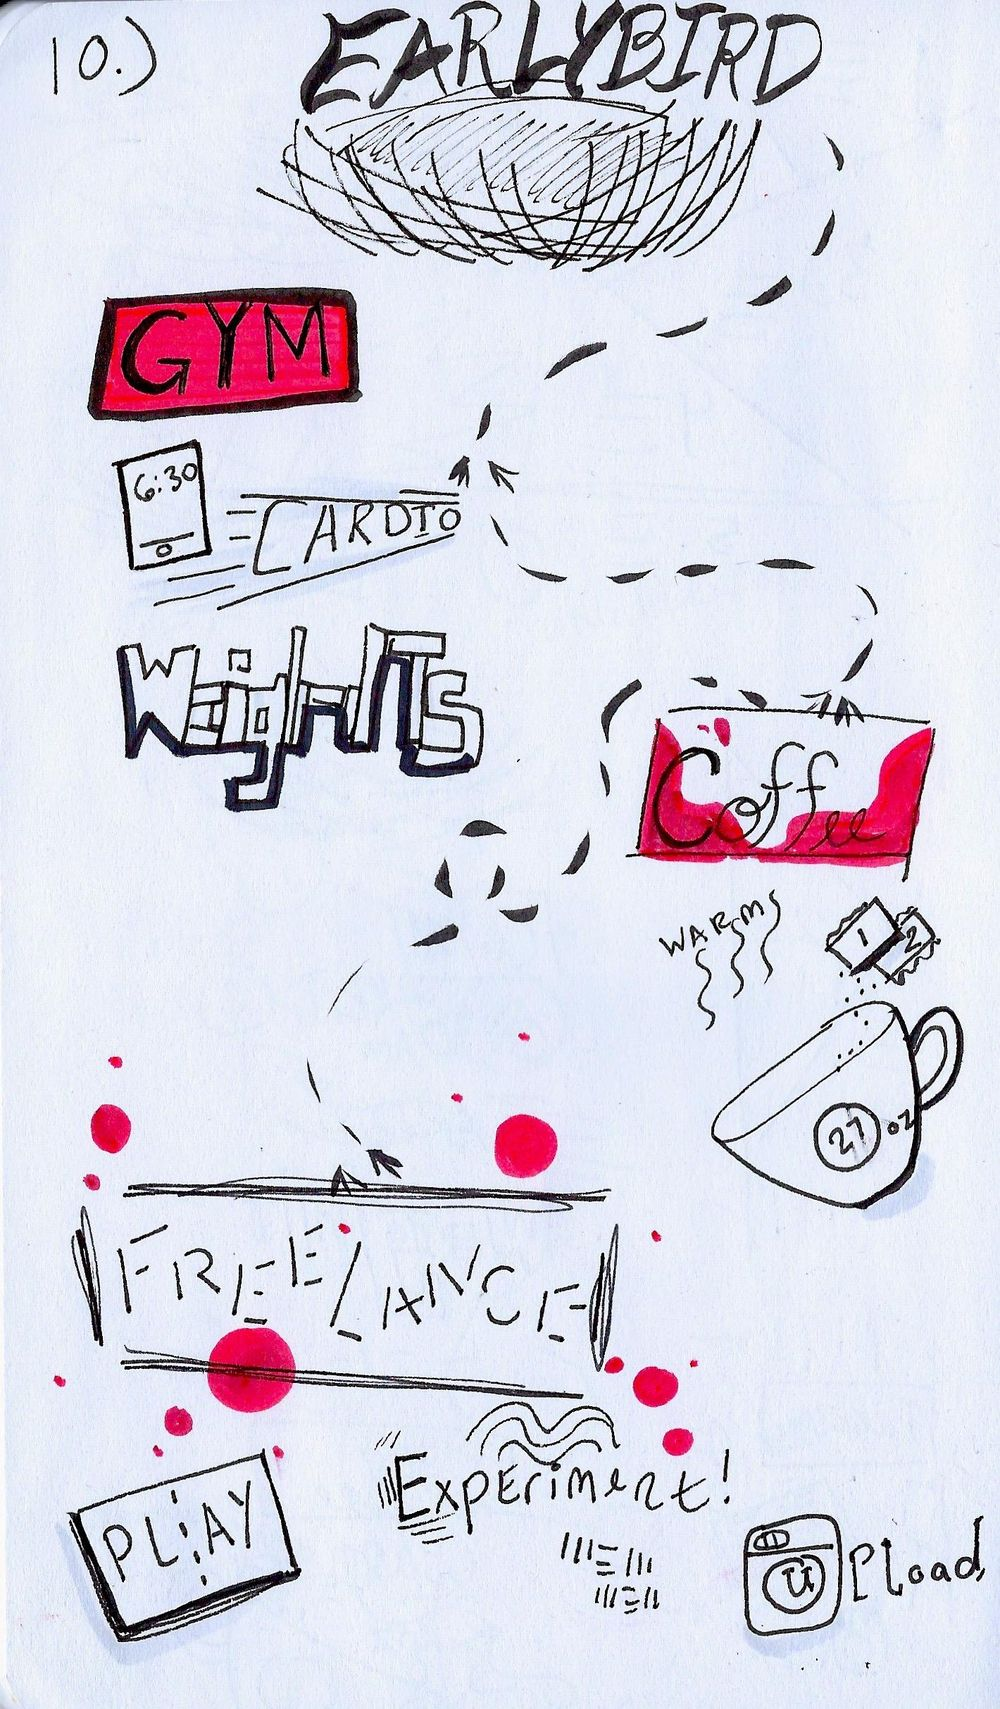 Sketchnotes! - image 1 - student project